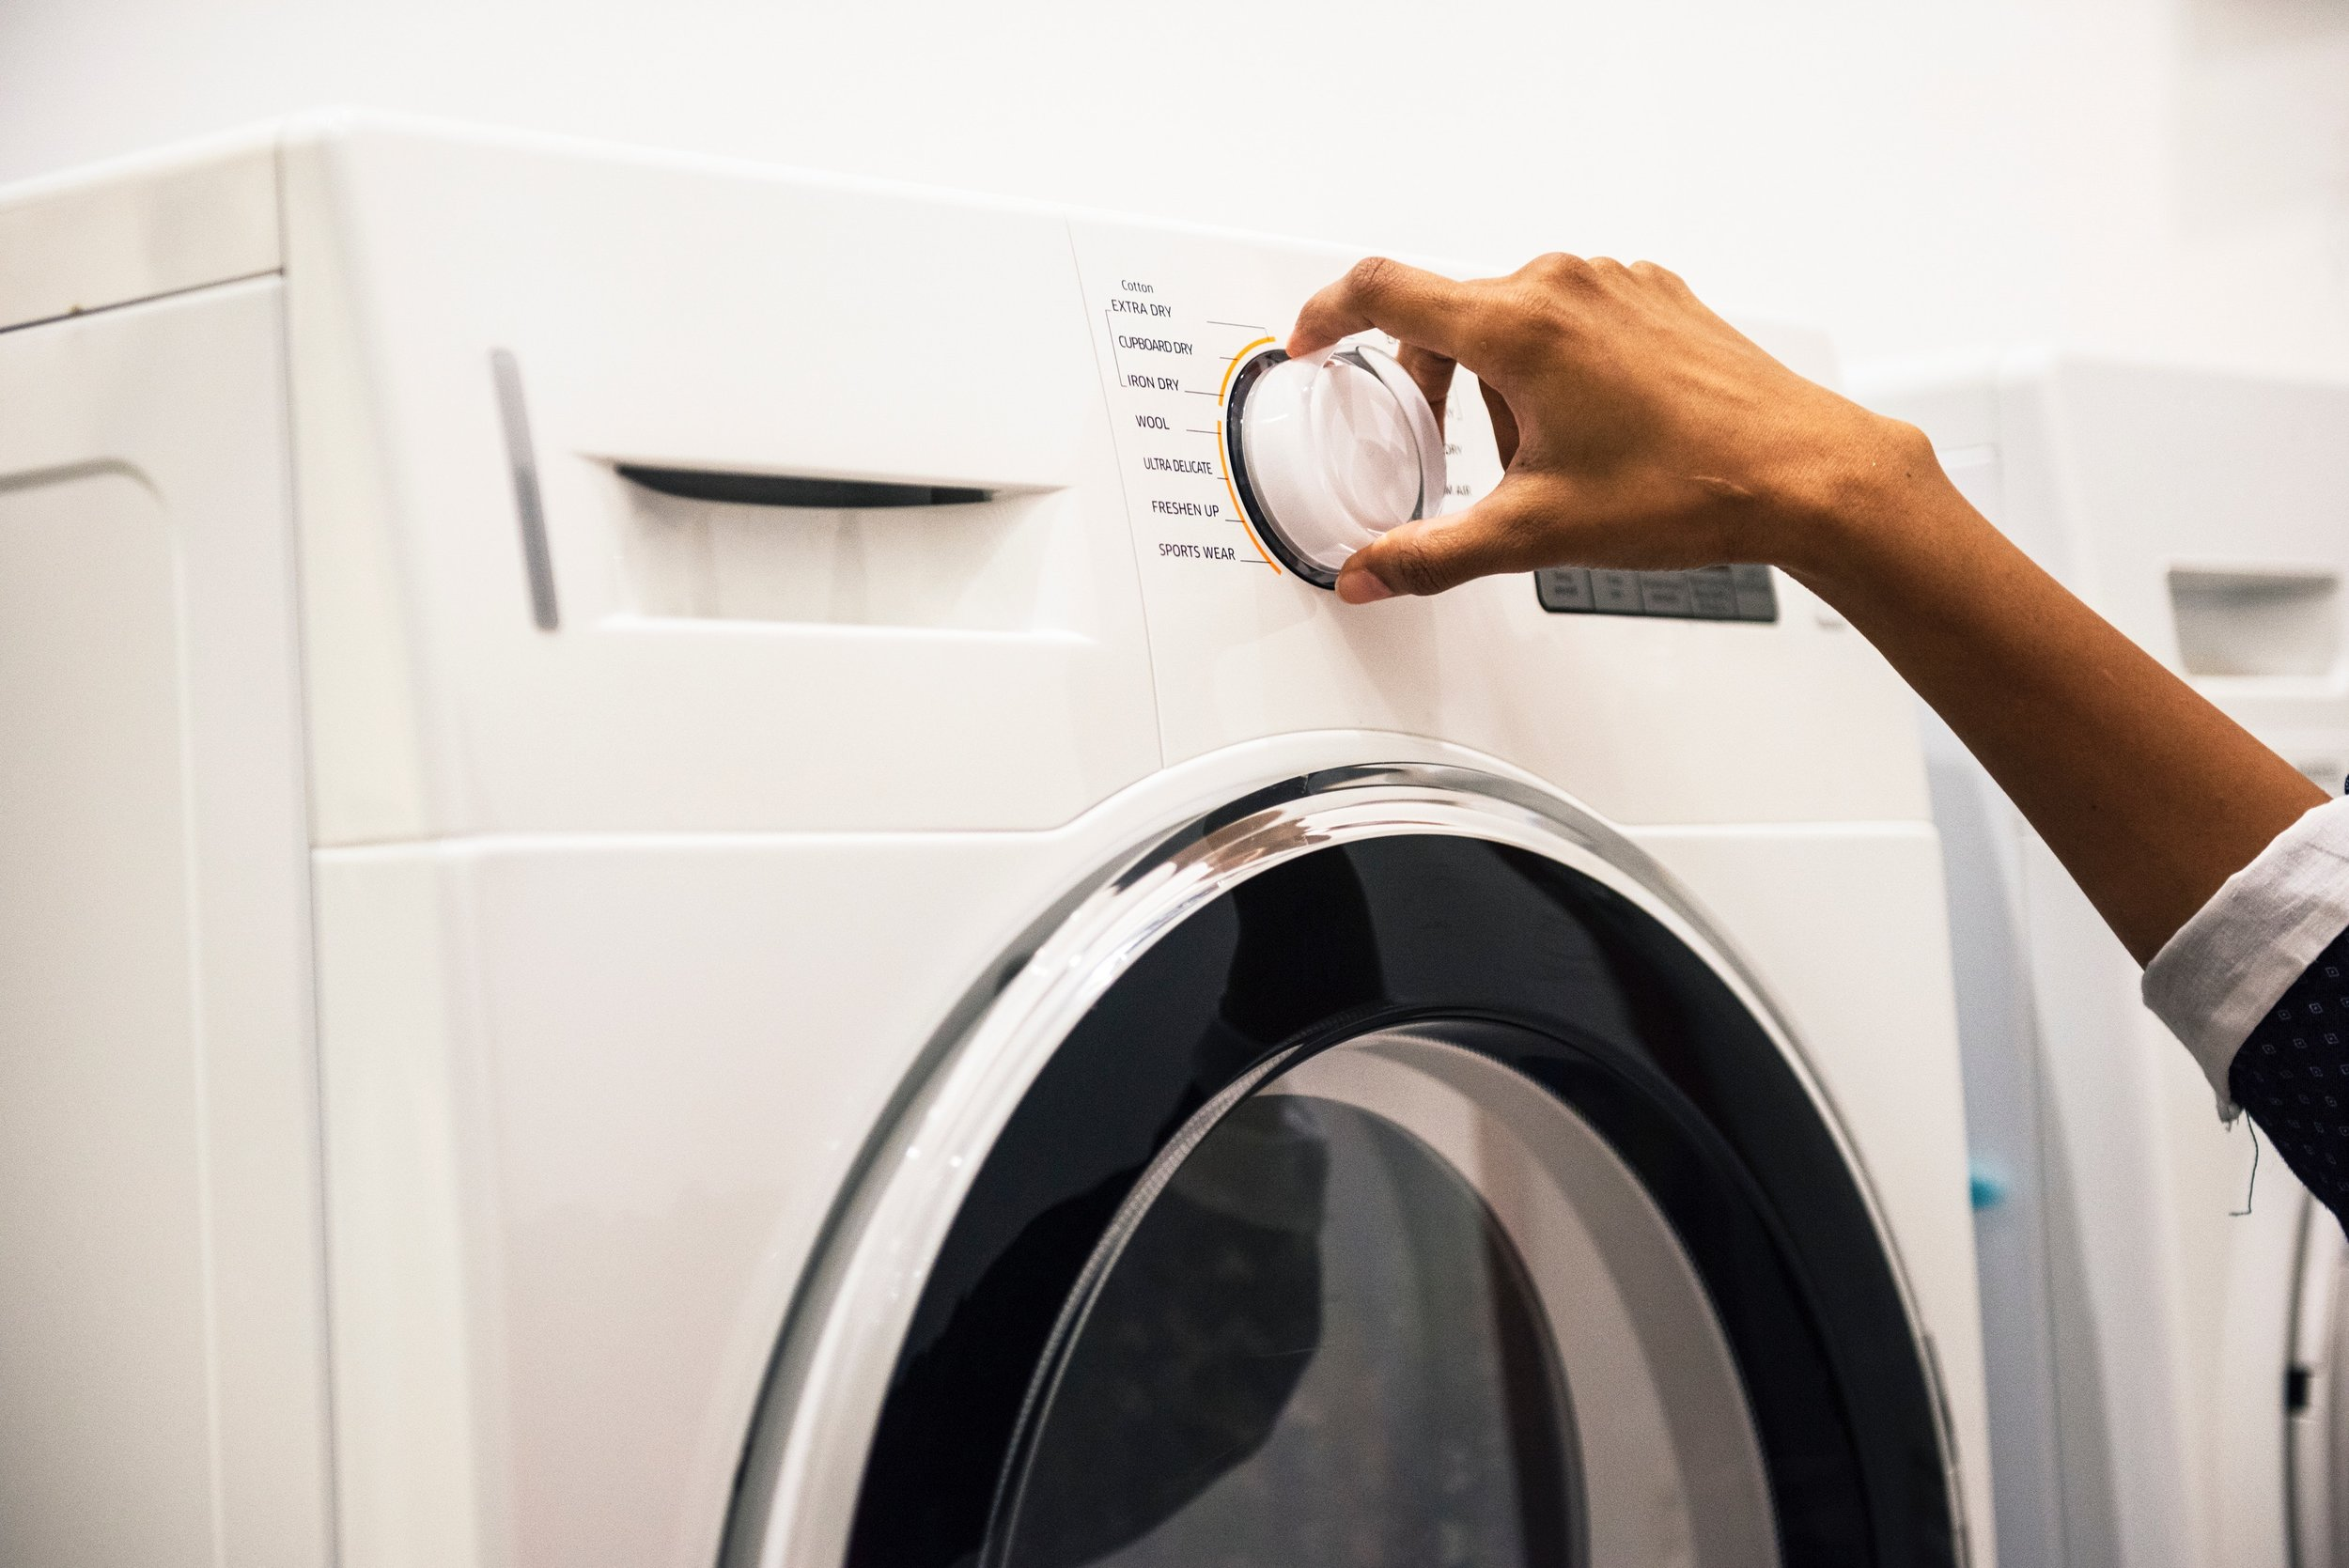 Washing machine-related failures are one of the top 10 leading sources of residential water losses.  And 6% of all failures occur in unoccupied homes costing on average $5,308 after deductible.  - Institute for Business & Home Safety www.disastersafey.org